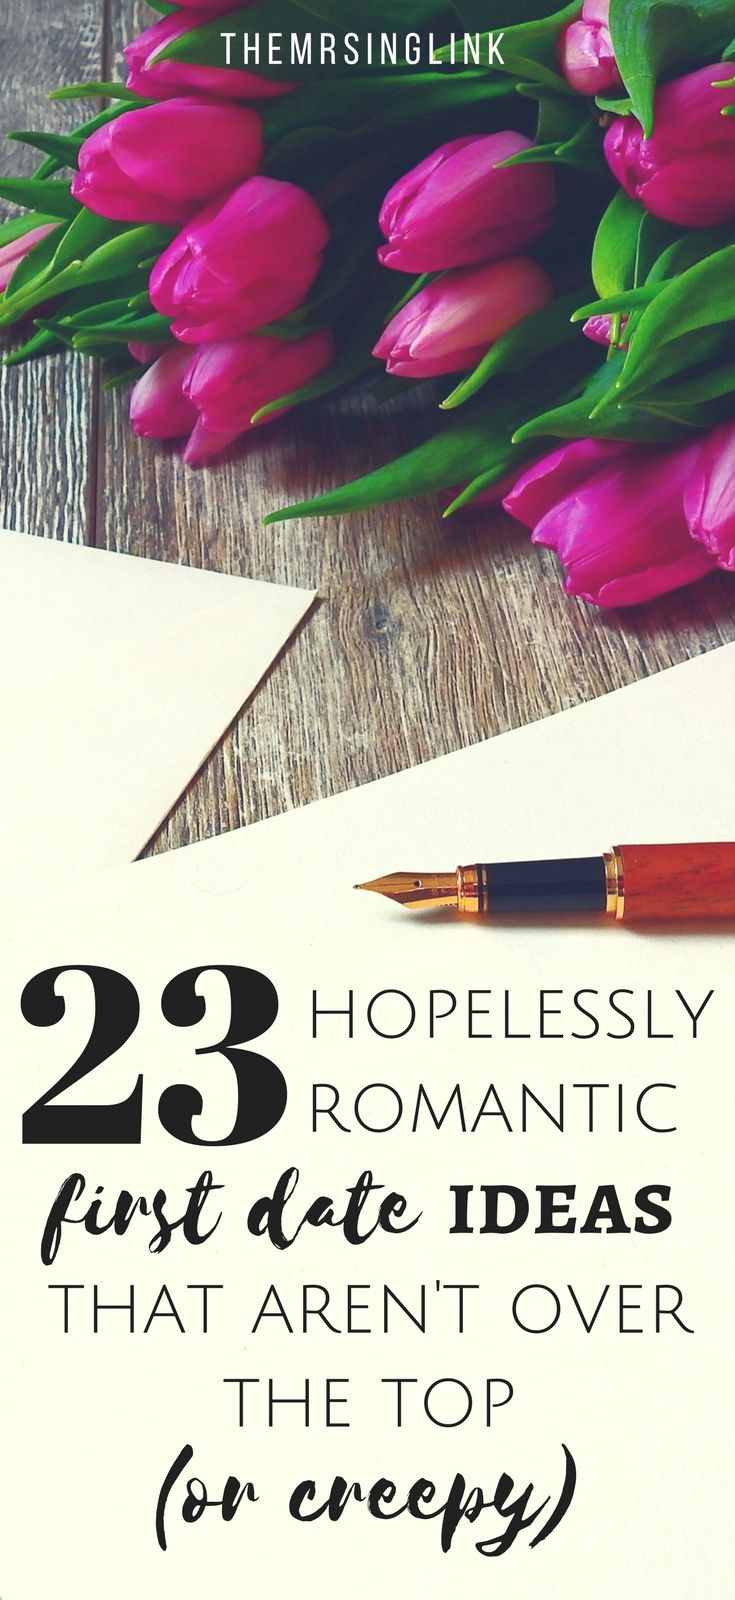 Hopelessly Romantic First Date Ideas That Aren't Over The Top |  Relationships, Advice and Romantic